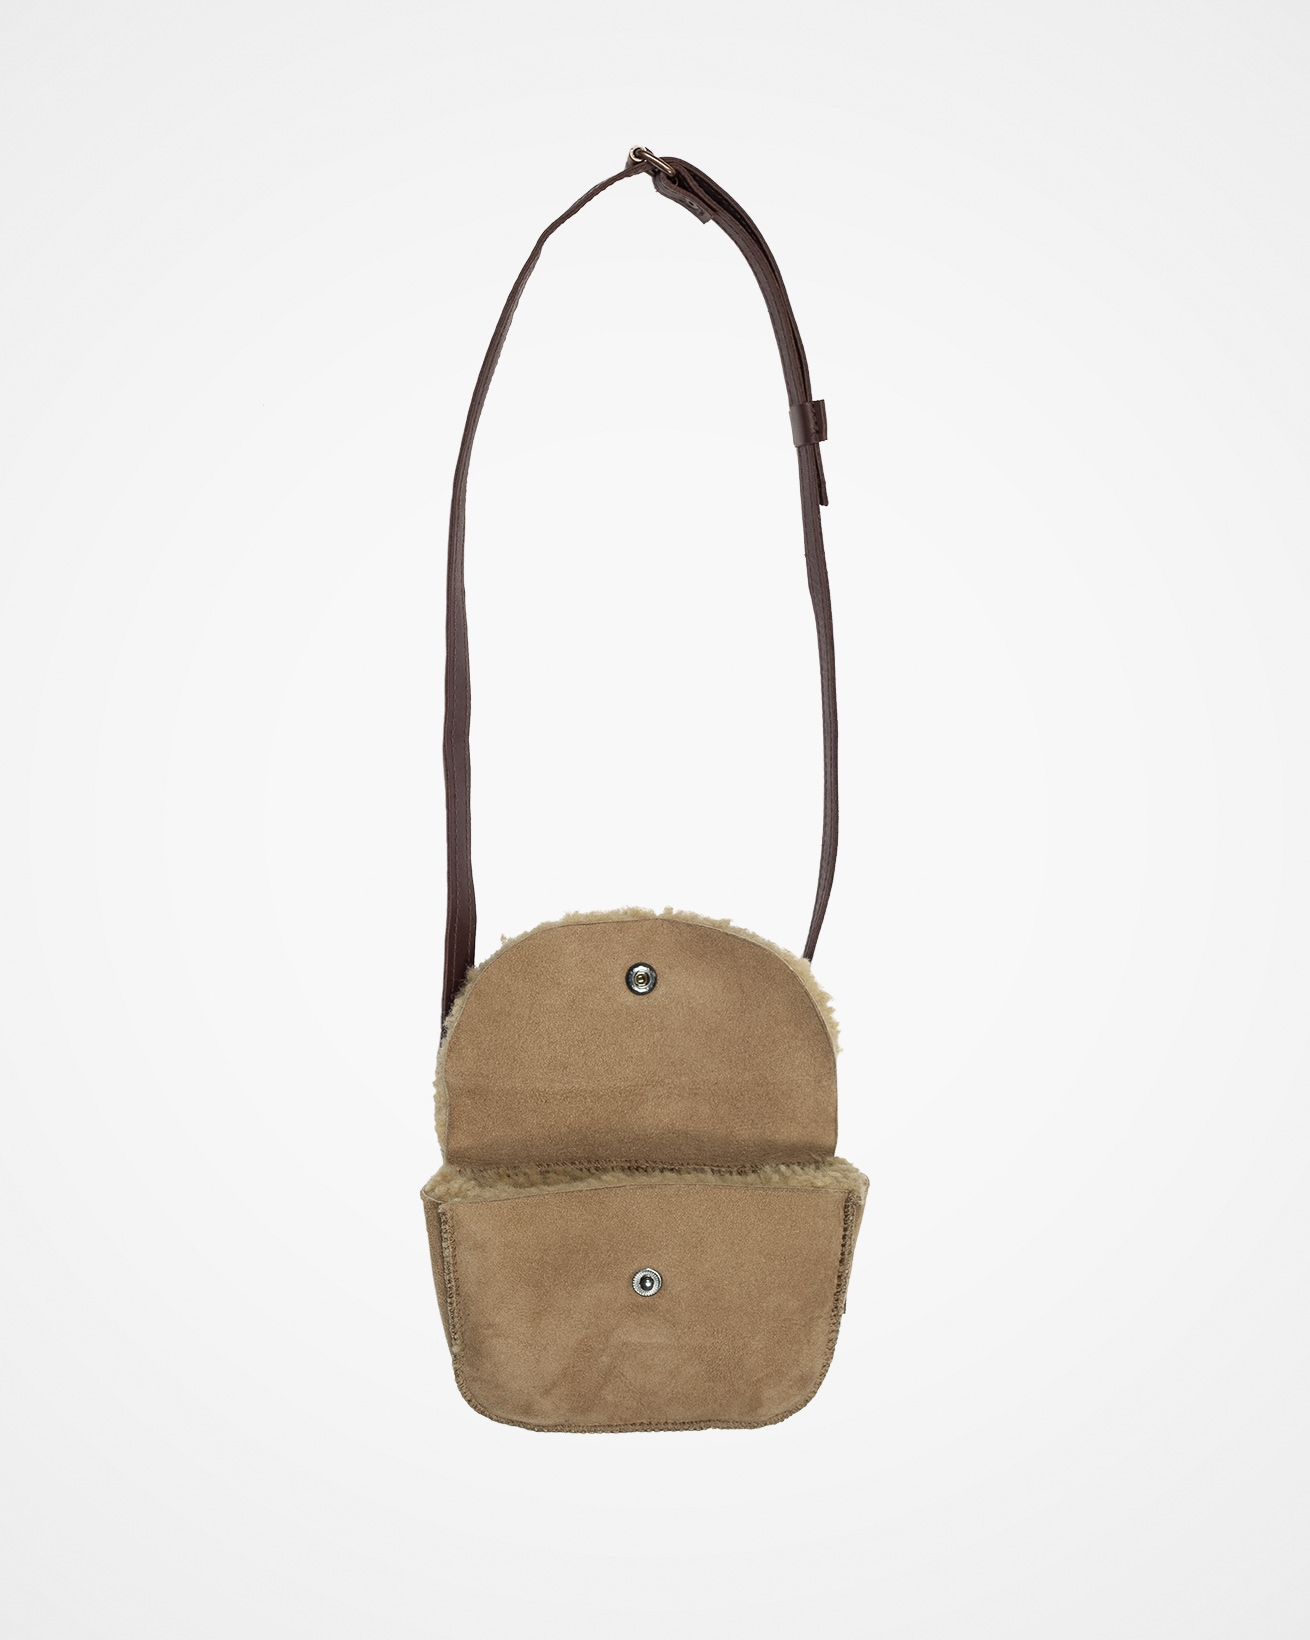 7702_sheepskin-belt-bag_teddy_open.jpg